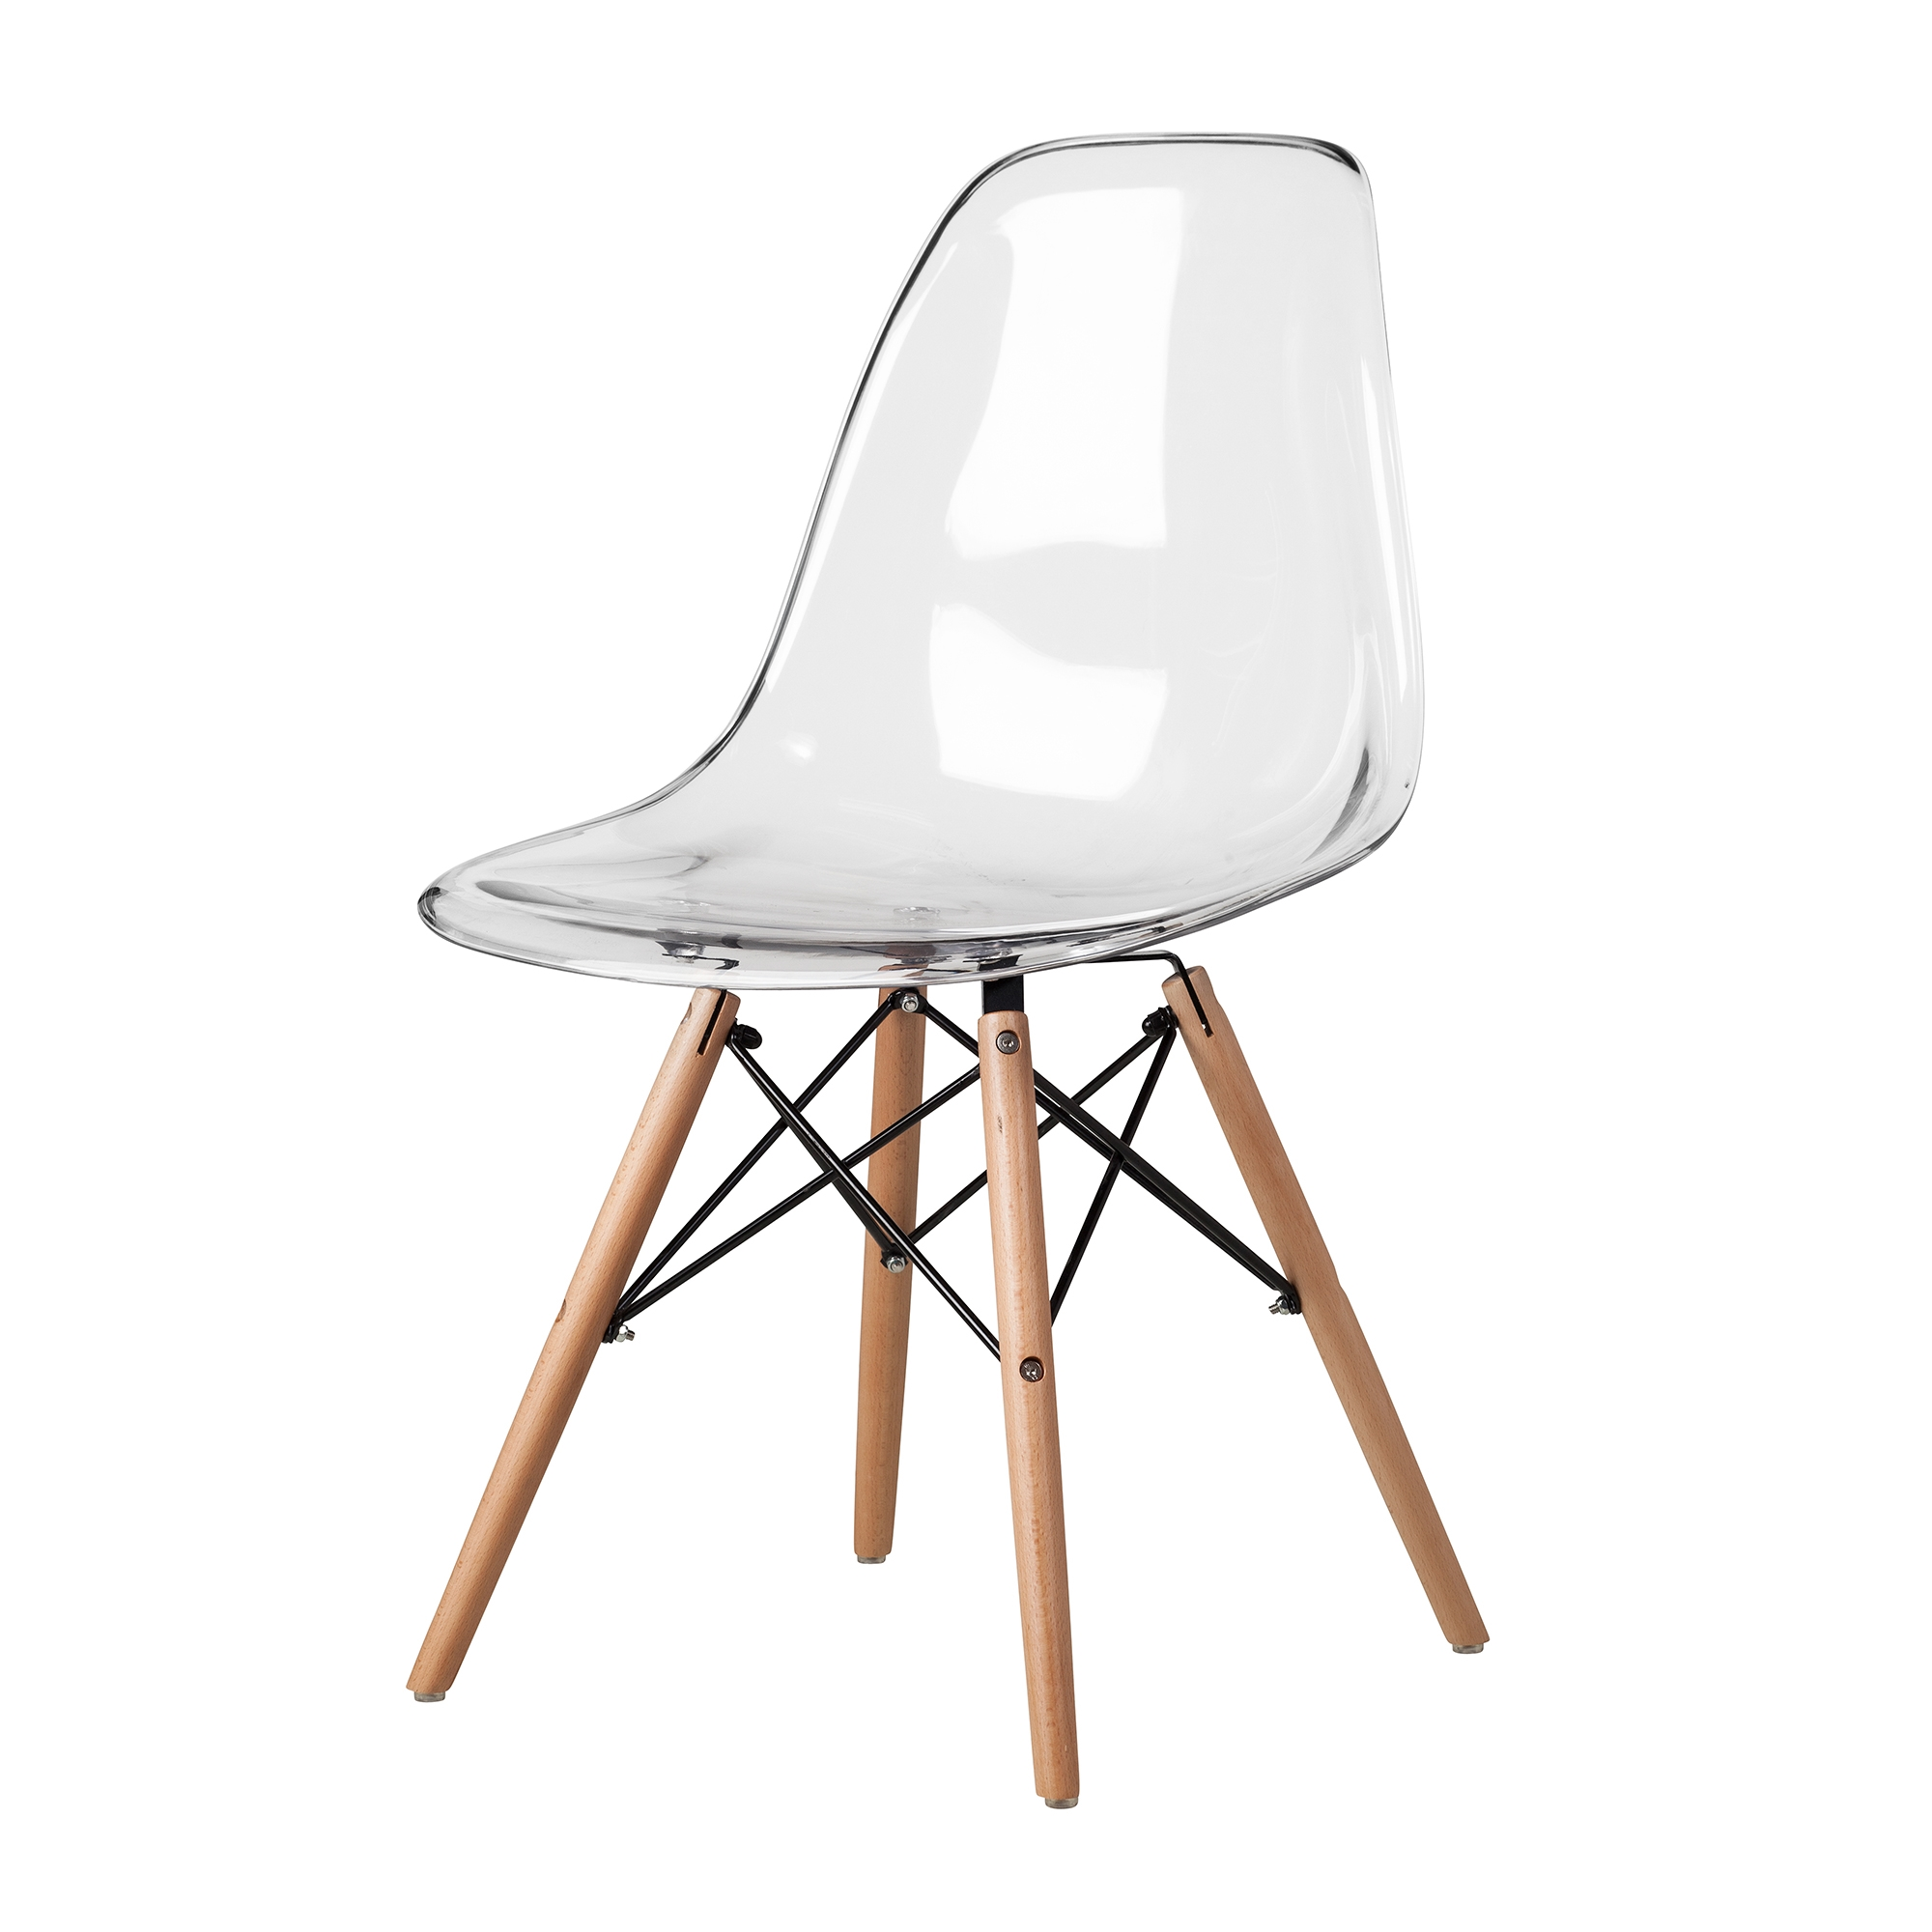 ... Chair Mid Century Modern Clear Plastic Larger Photo Email A Friend  sc 1 st  The Khazana & Charles Eames DSW Side Chair Mid Century Modern Clear Plastic ...